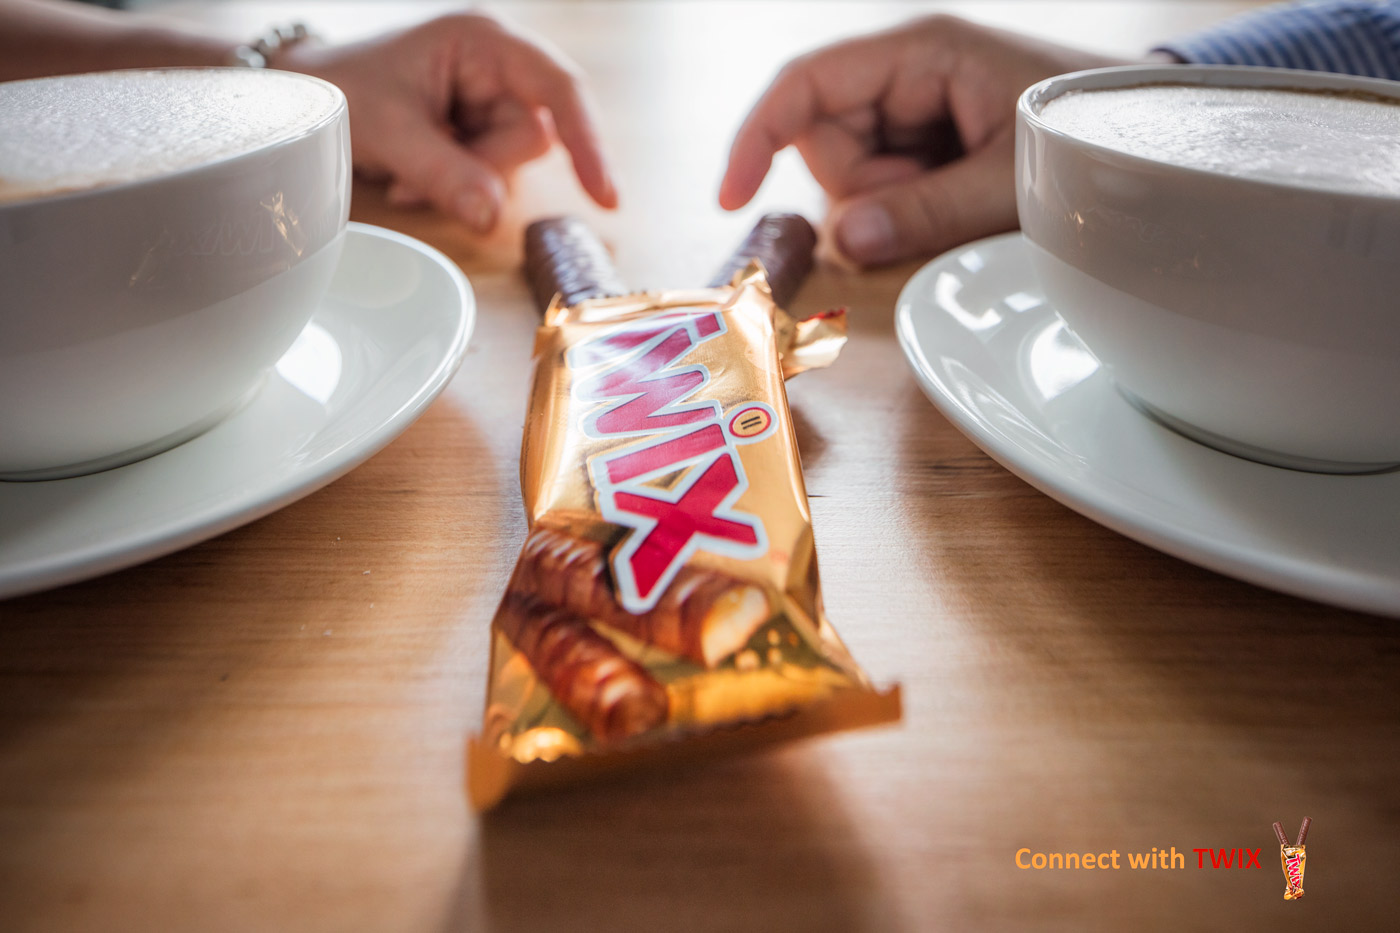 Connect with TWIX, lifestyle images